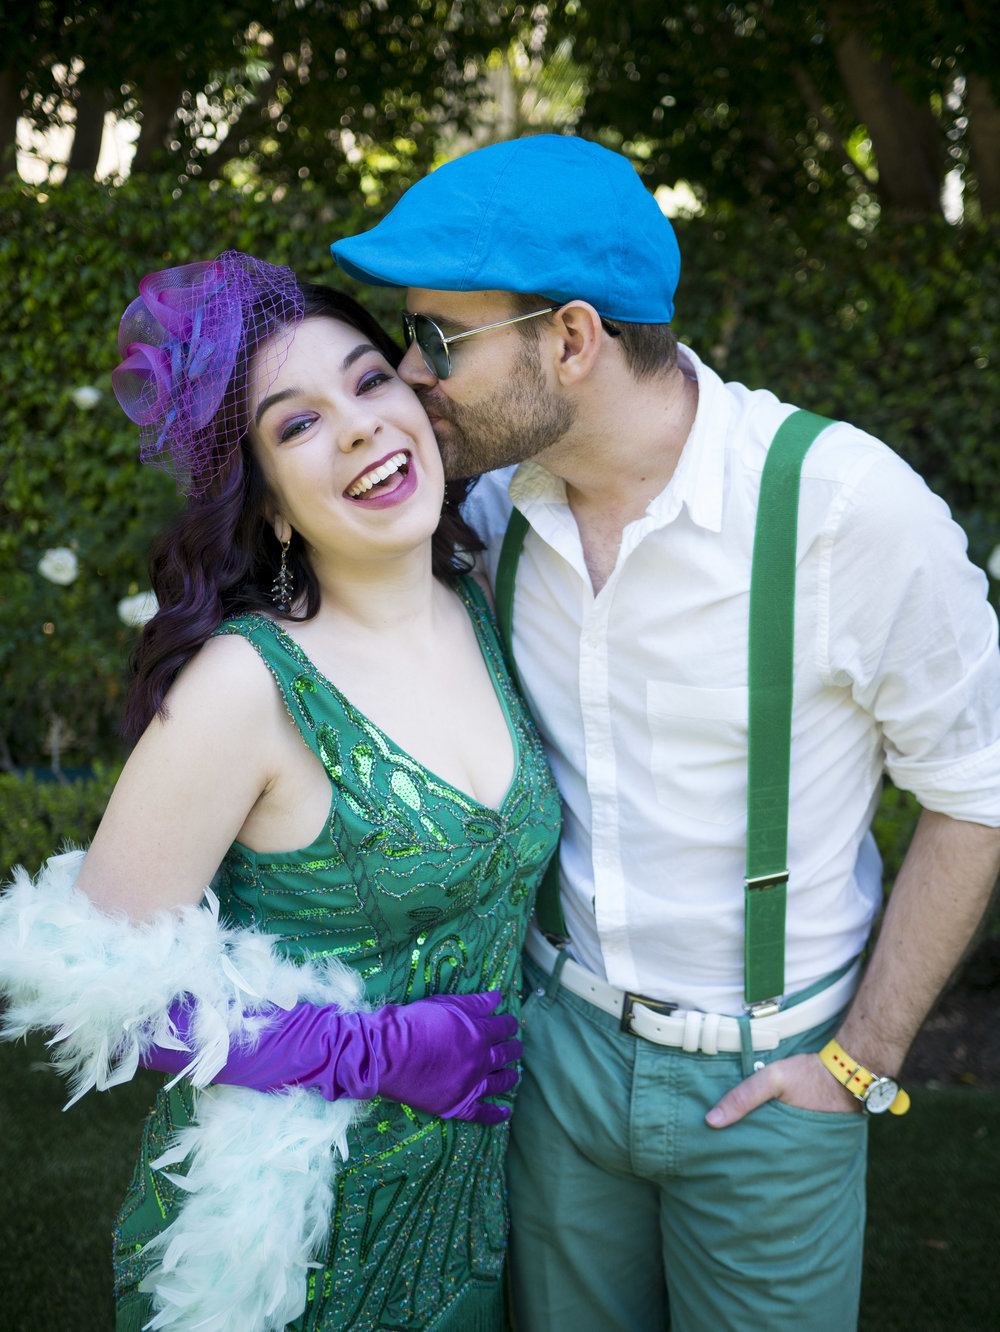 4-22-18 Spring Dapper Day 034.jpg